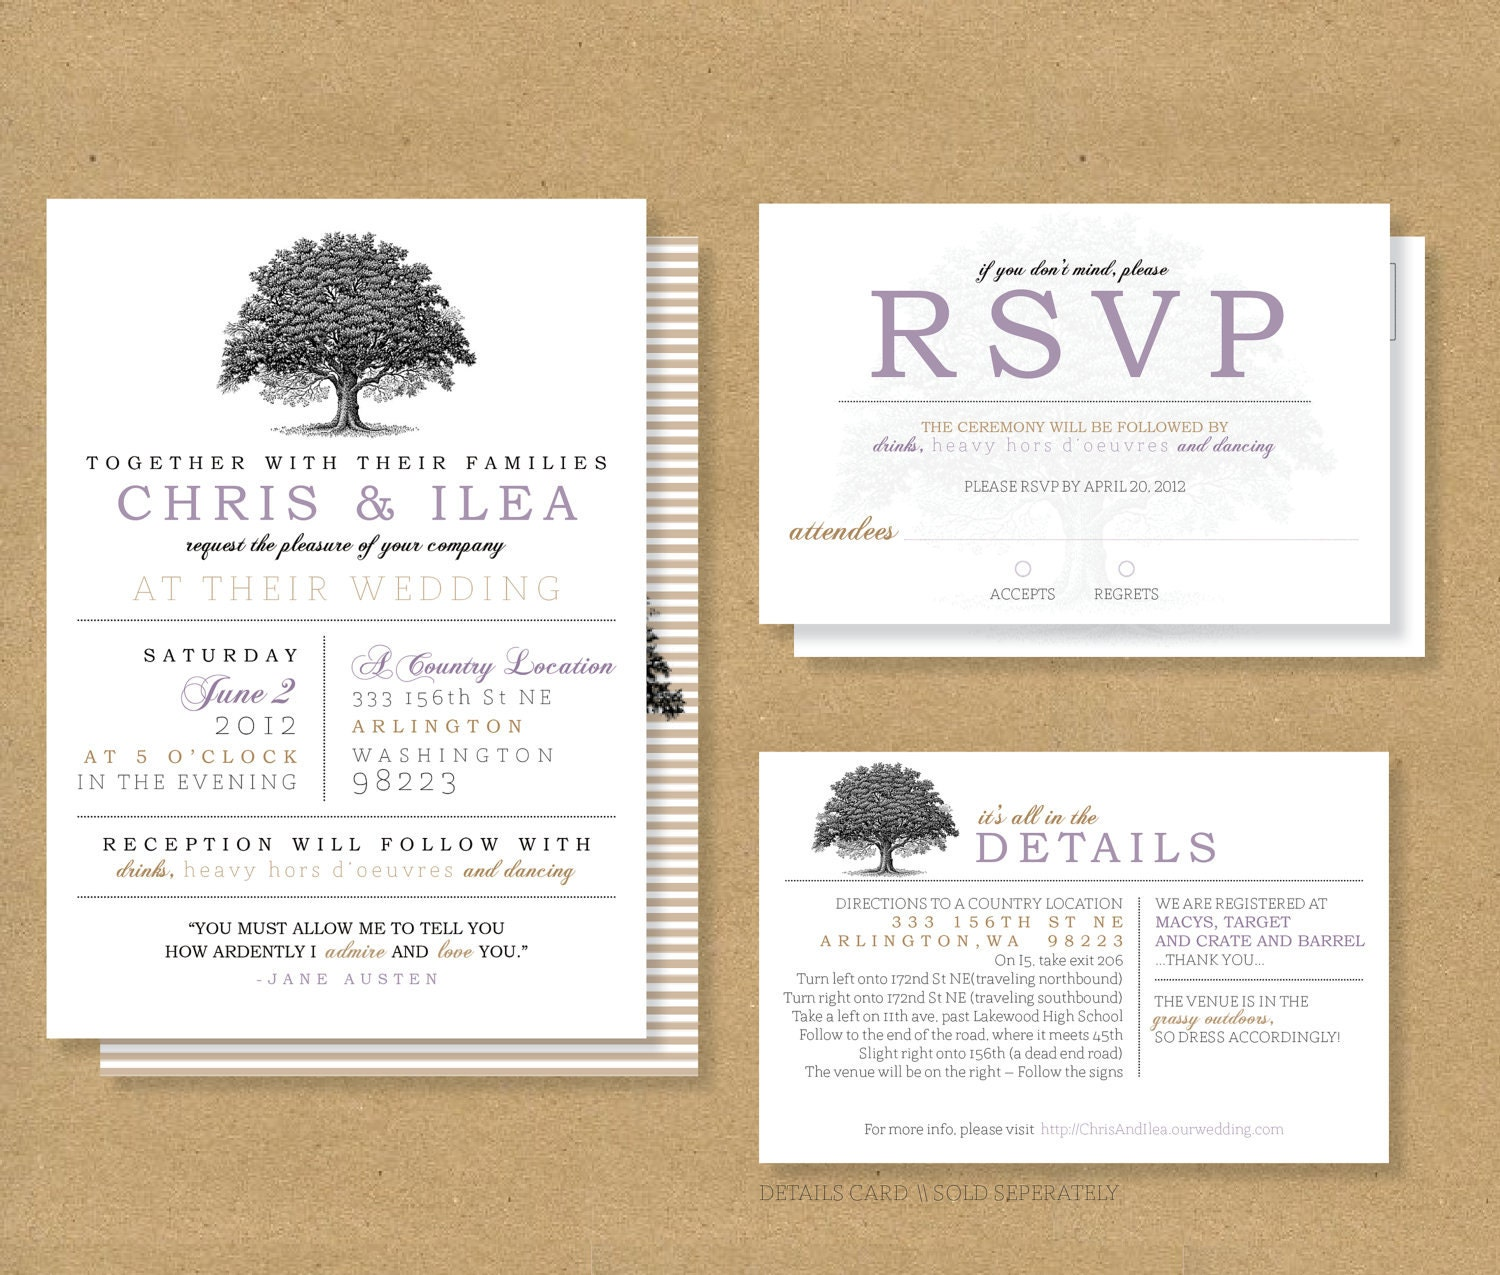 Wedding Invitations Rsvp was very inspiring ideas you may choose for invitation ideas